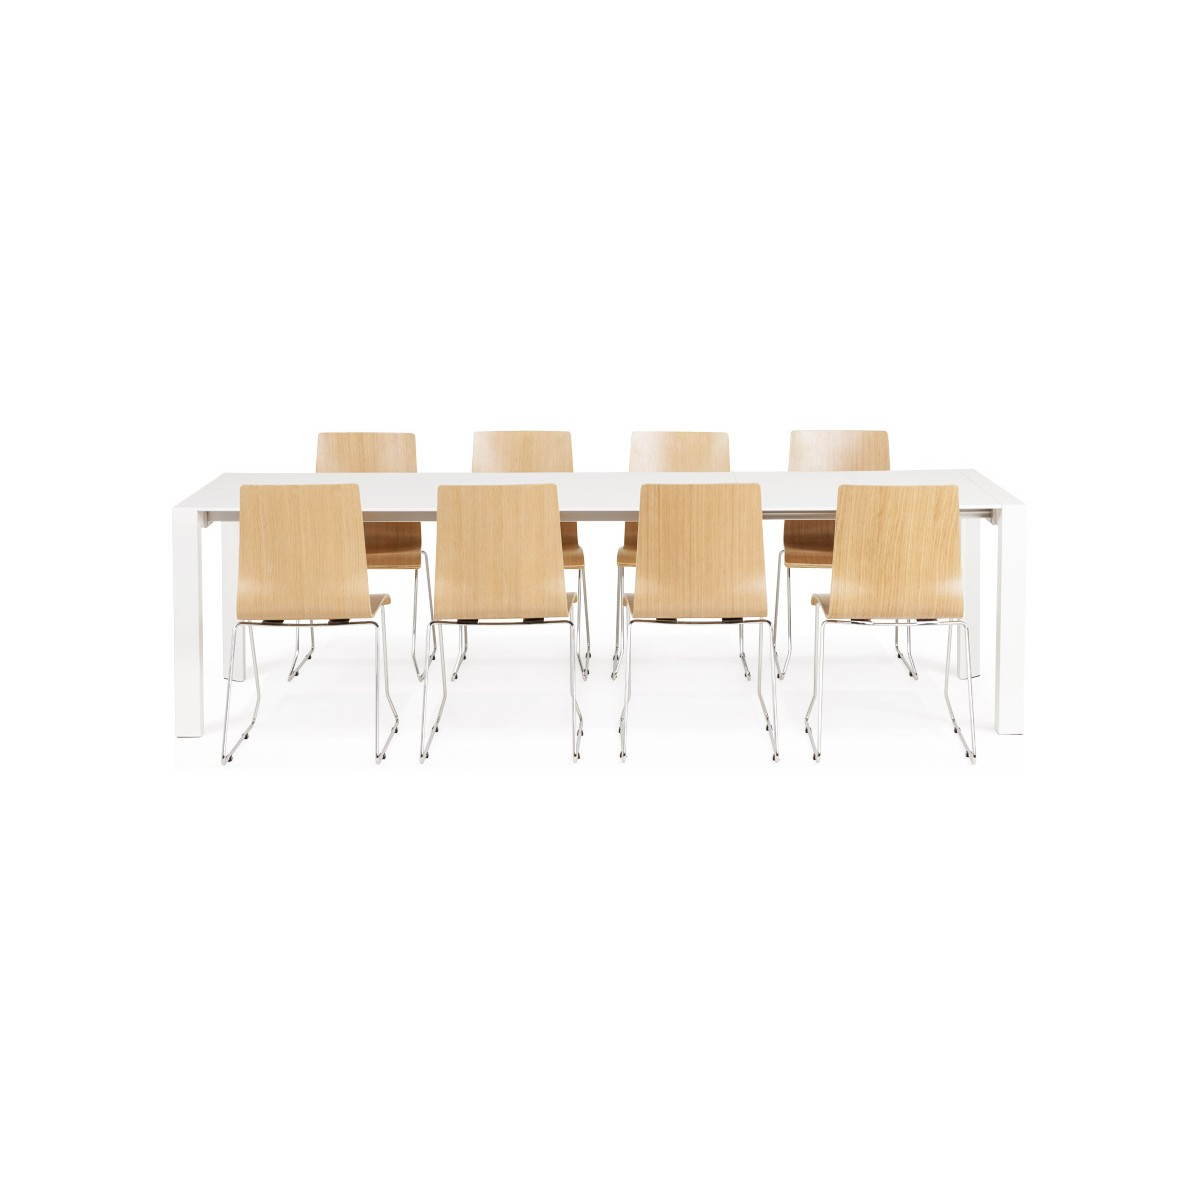 Table ronde bois blanc maison design for Table ronde bois blanc avec rallonge